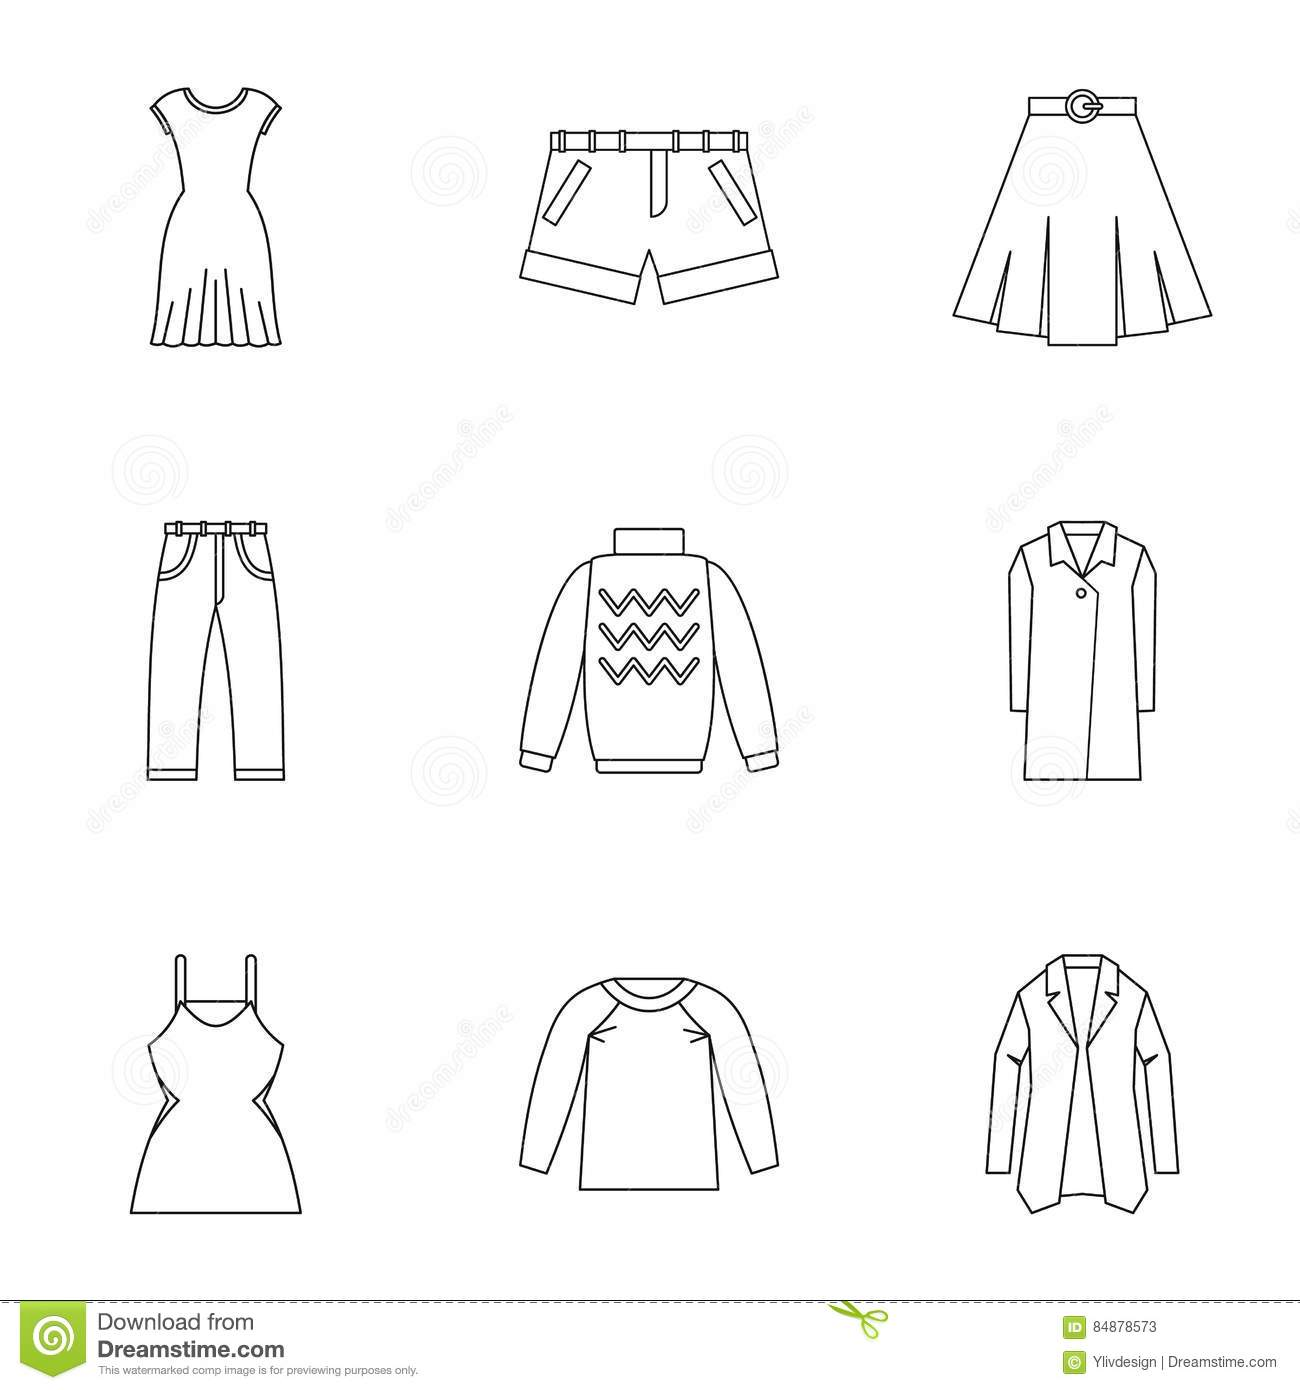 Italian Fashion Brands List in addition Stock Photo Broken Clothes Hanger Image26653690 likewise Winter Clothes Coloring Pages Getcoloringpages Within Winter Hat as well What Yoga Part 2 Kundalini besides How To Draw A Crusader For Kids. on clothes off